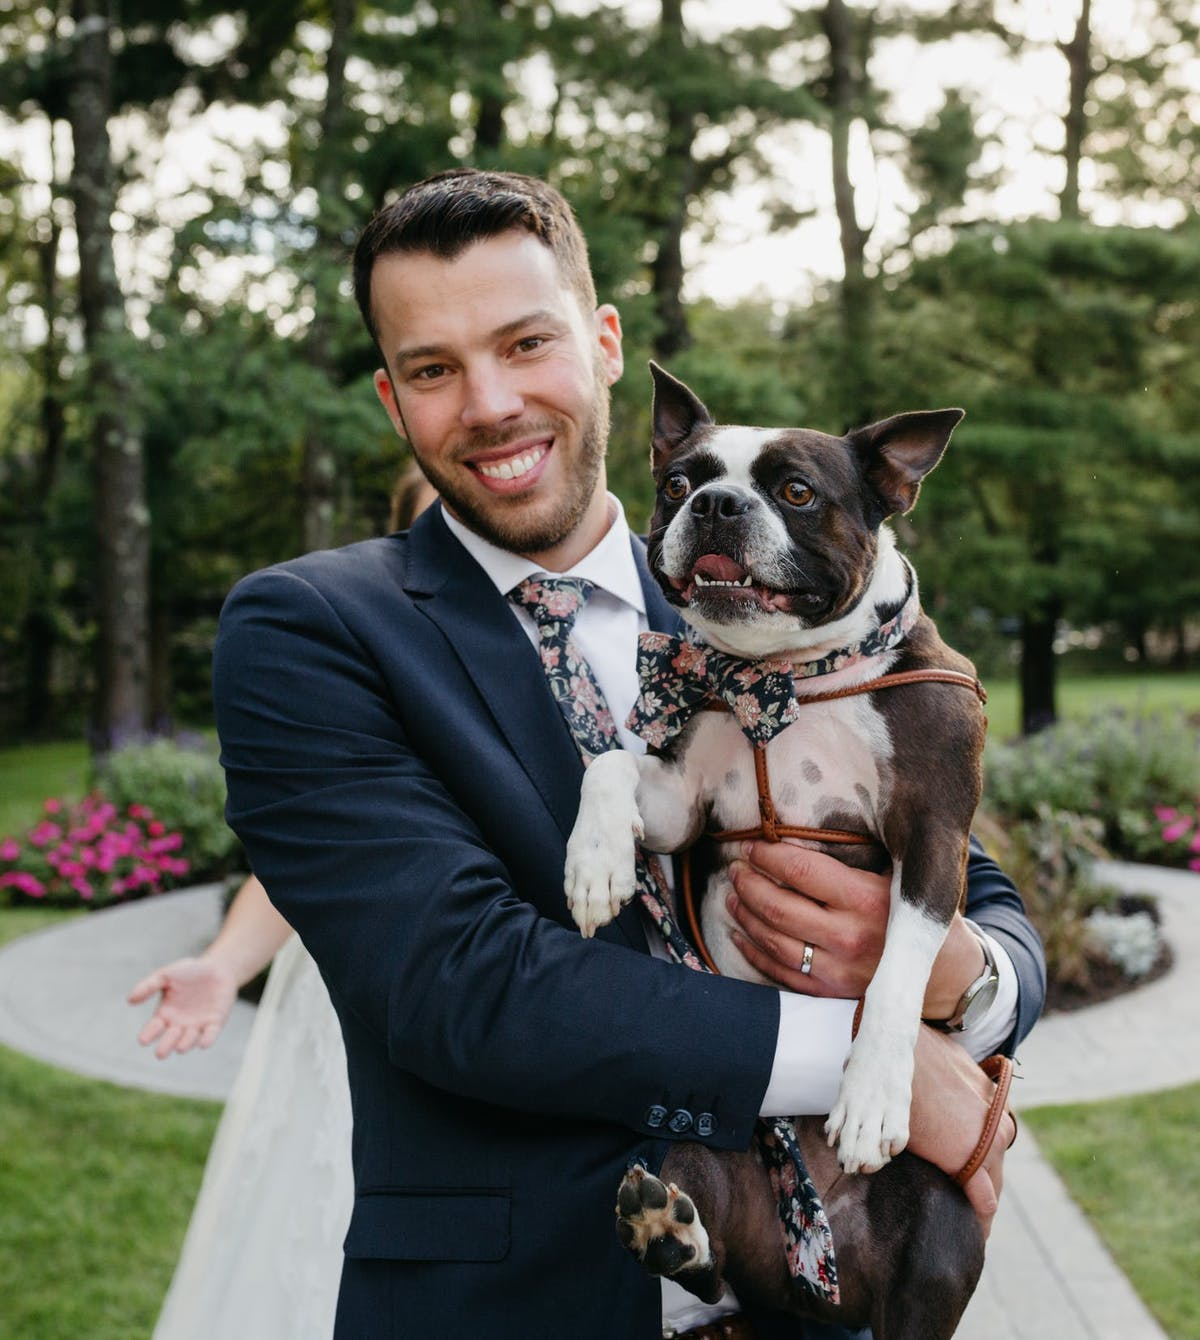 Dogs In Weddings: Make your dog a groomsman